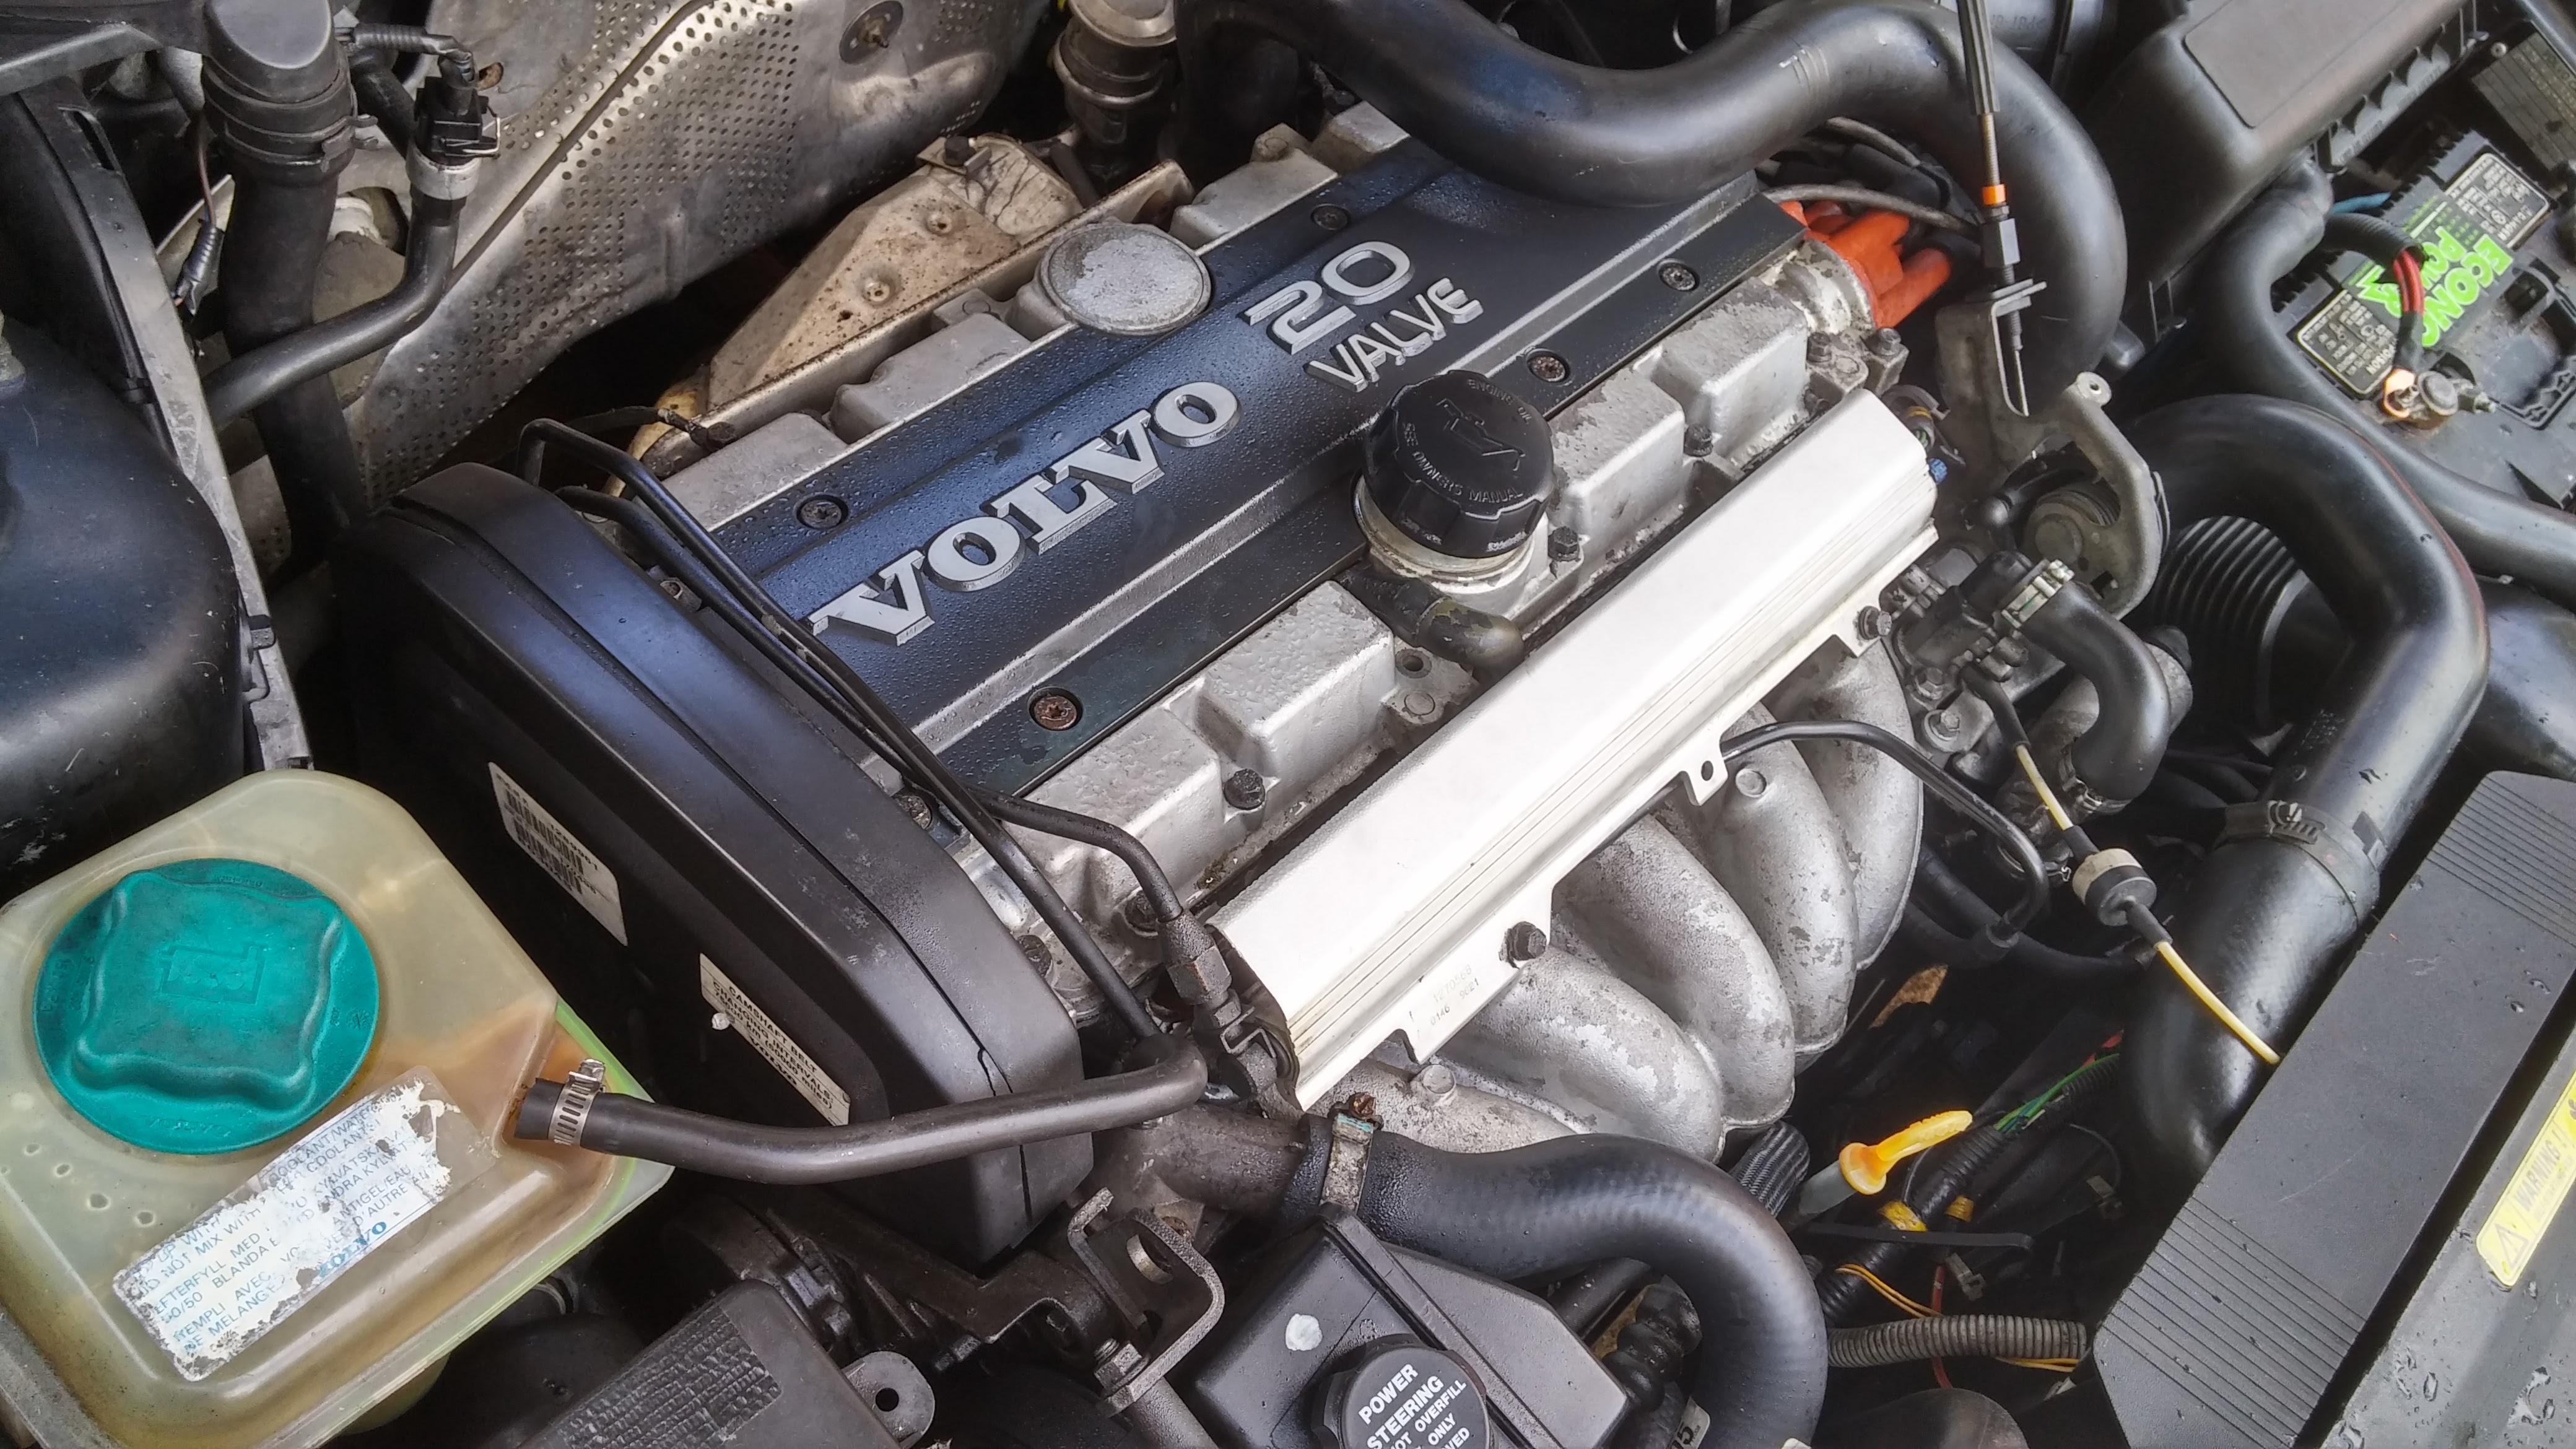 '98 V70 Water Leaking into Engine Bay